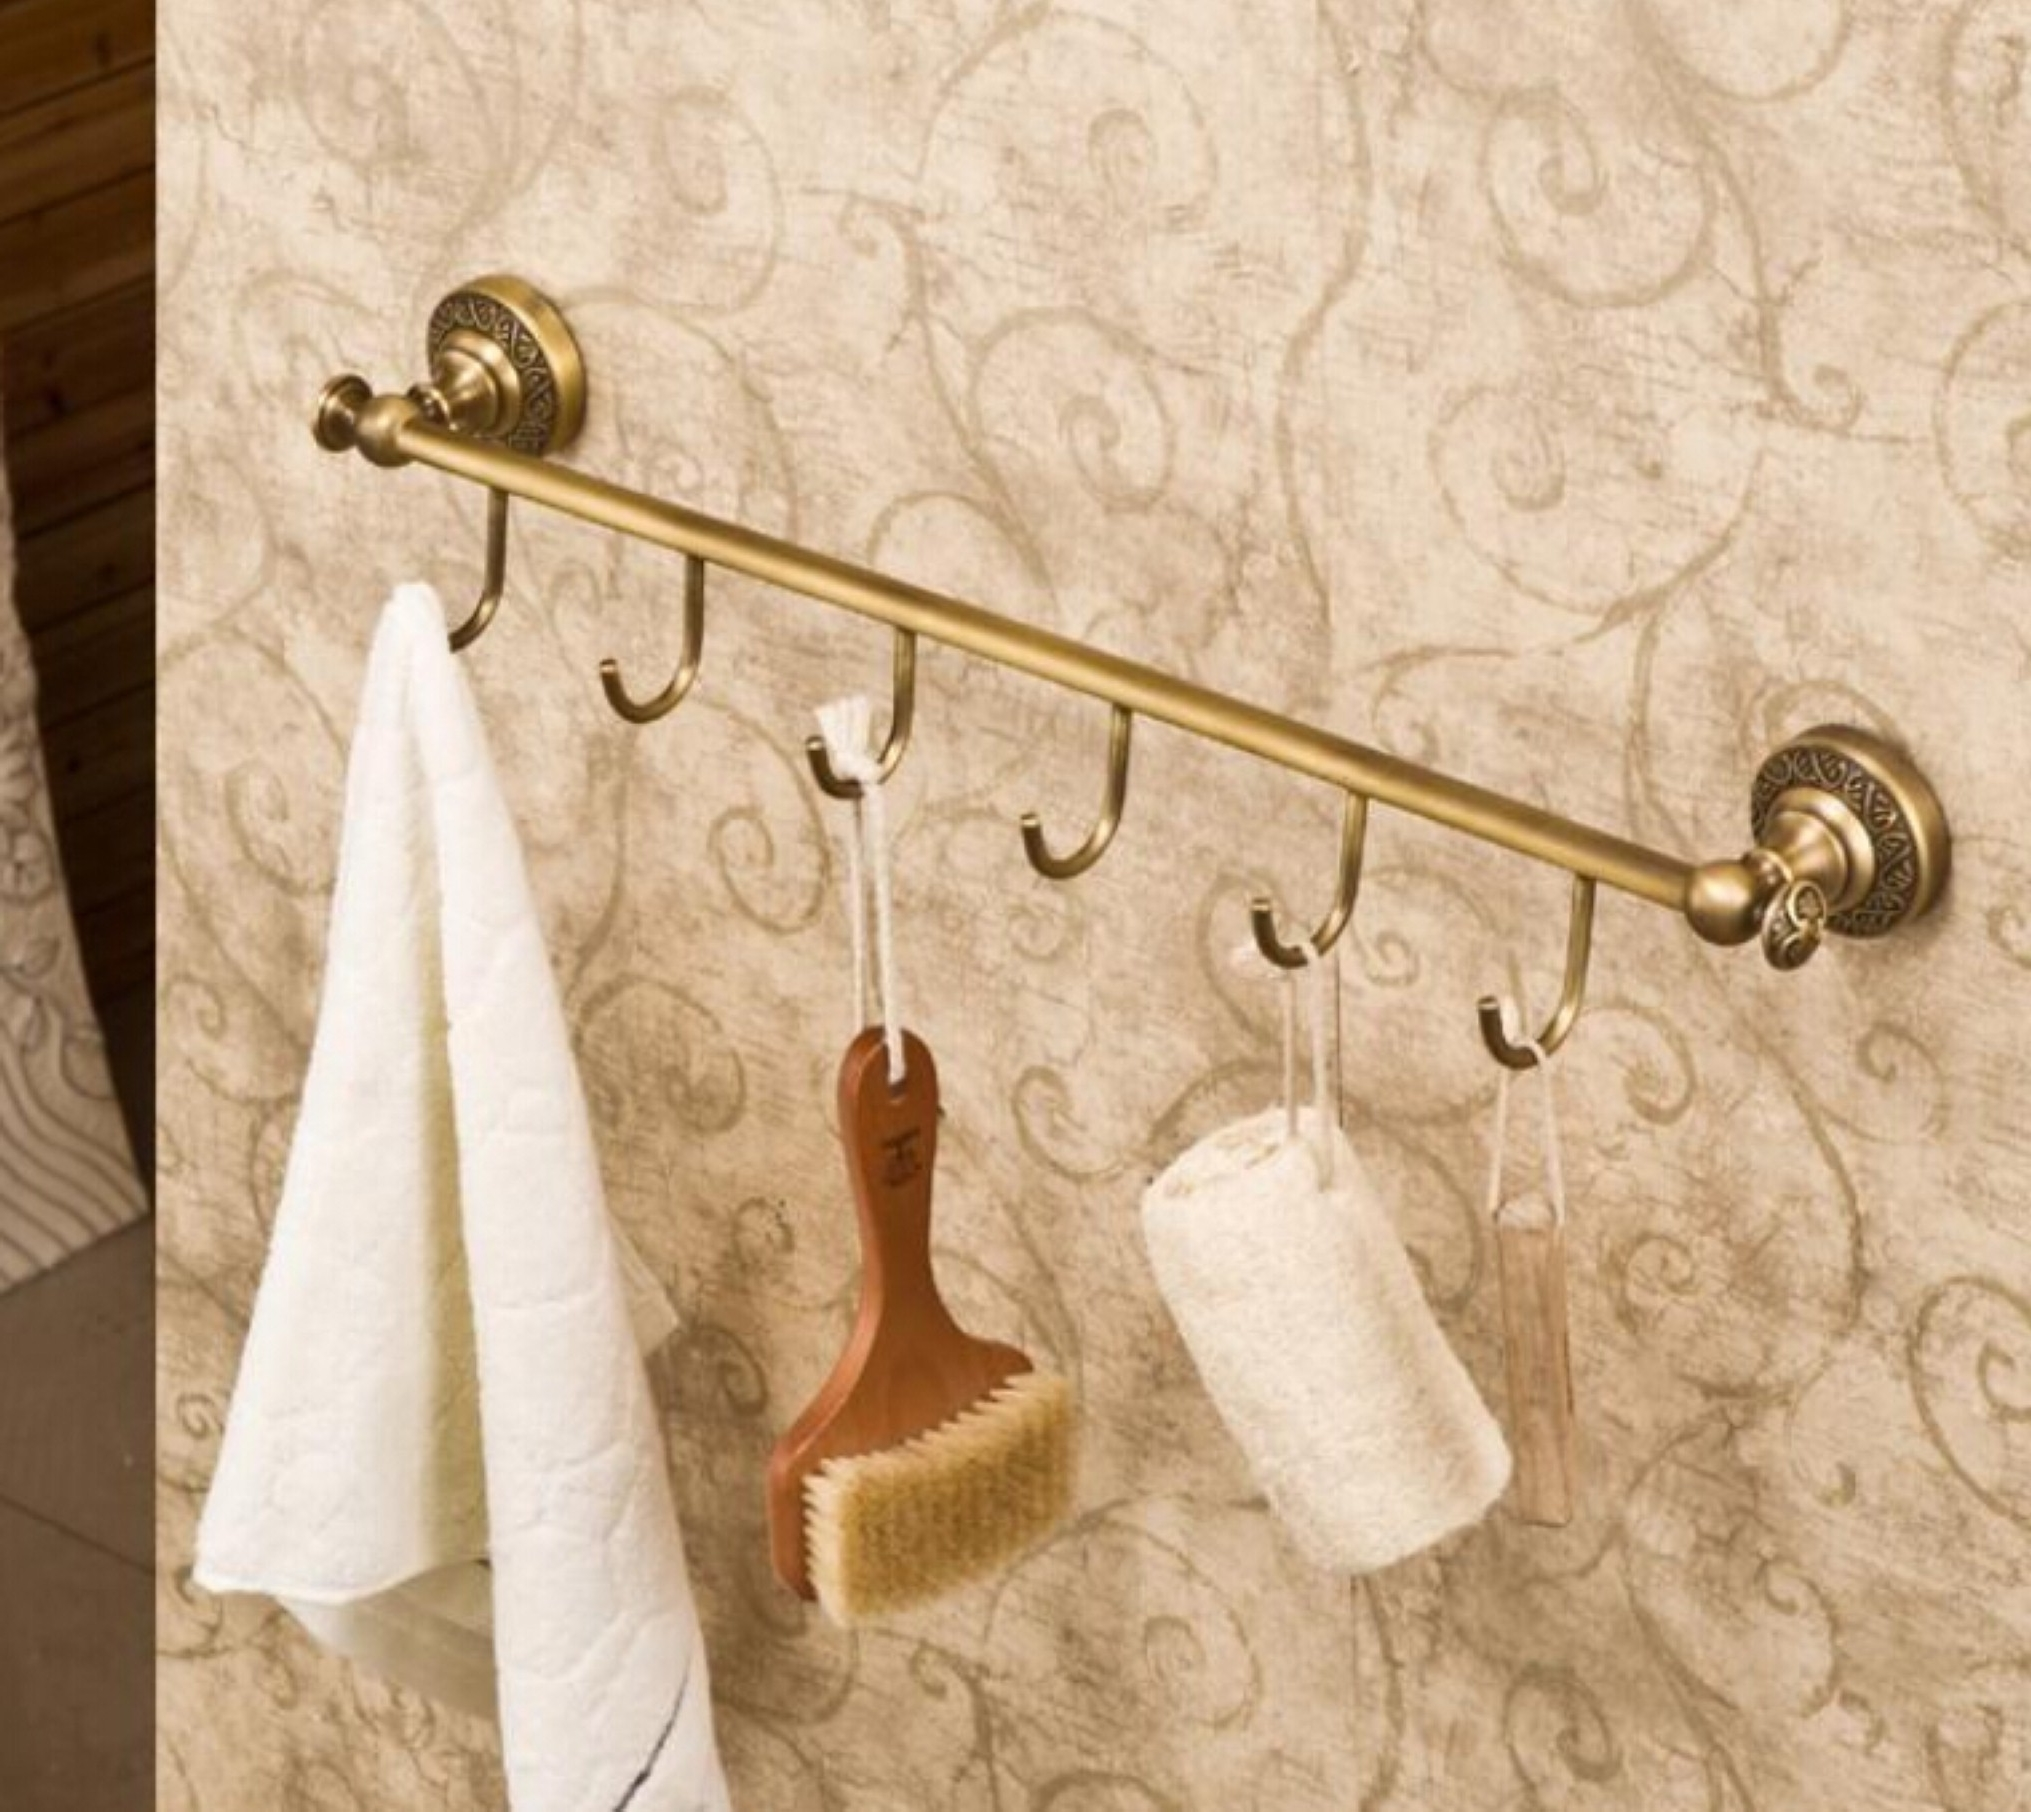 Minimalist Furniture Decorating Adorable Gold Coat Hanger Design For Bathroom With Brown Wall And White Towel Together With Brown Brush Innovative And Unique Coat Hanger Designs (View 25 of 25)